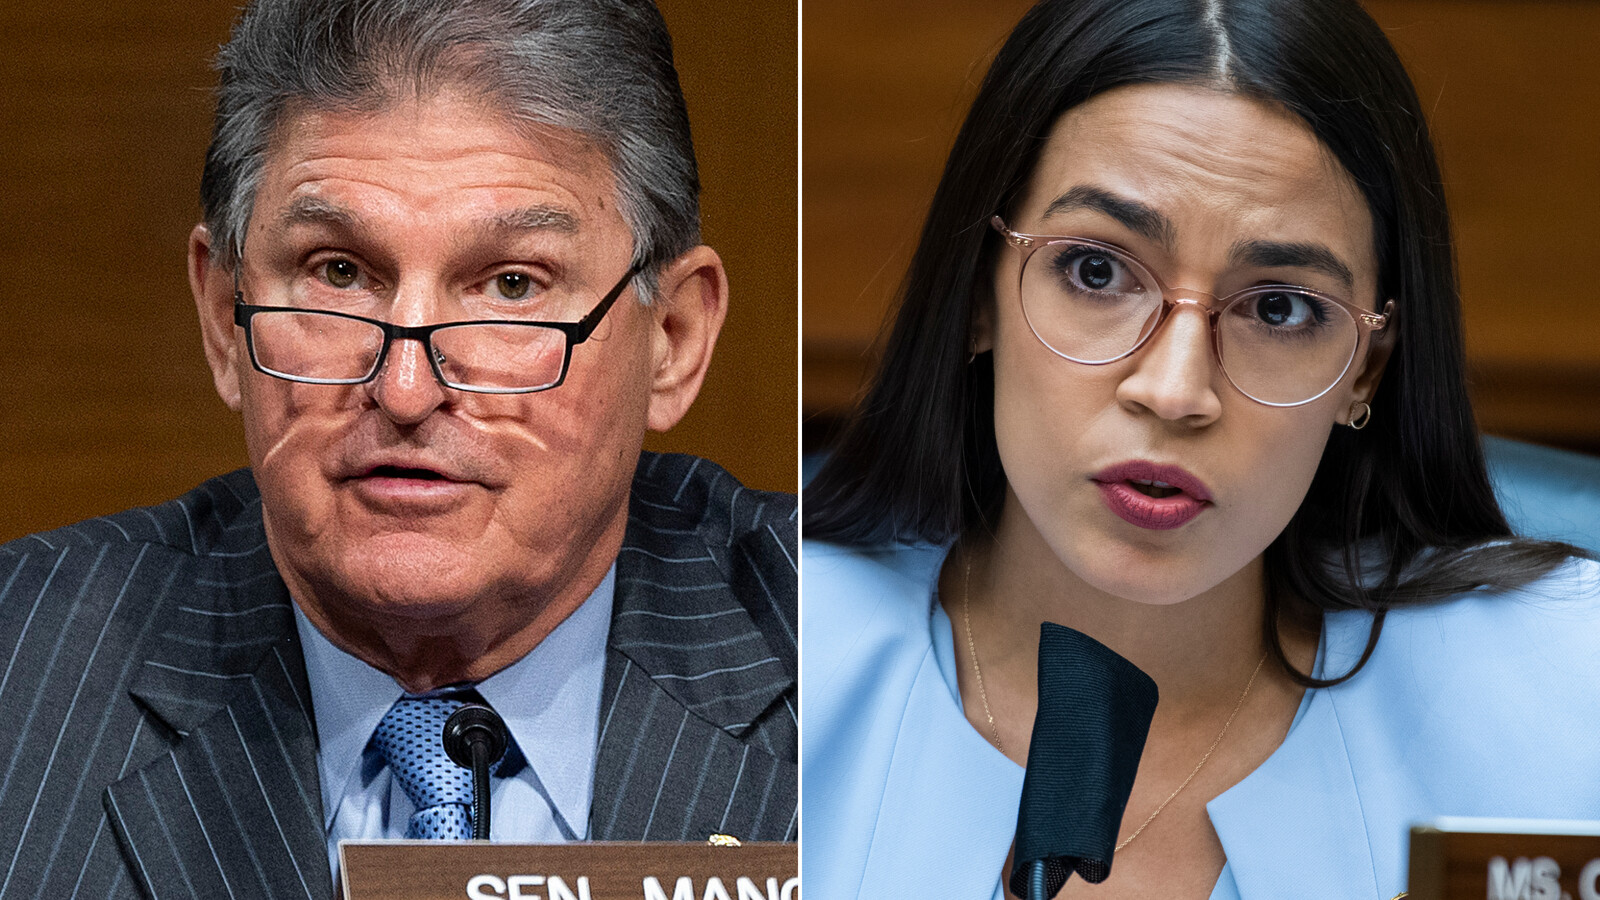 Ocasio-Cortez calls out Manchin for referring to her as 'young lady'